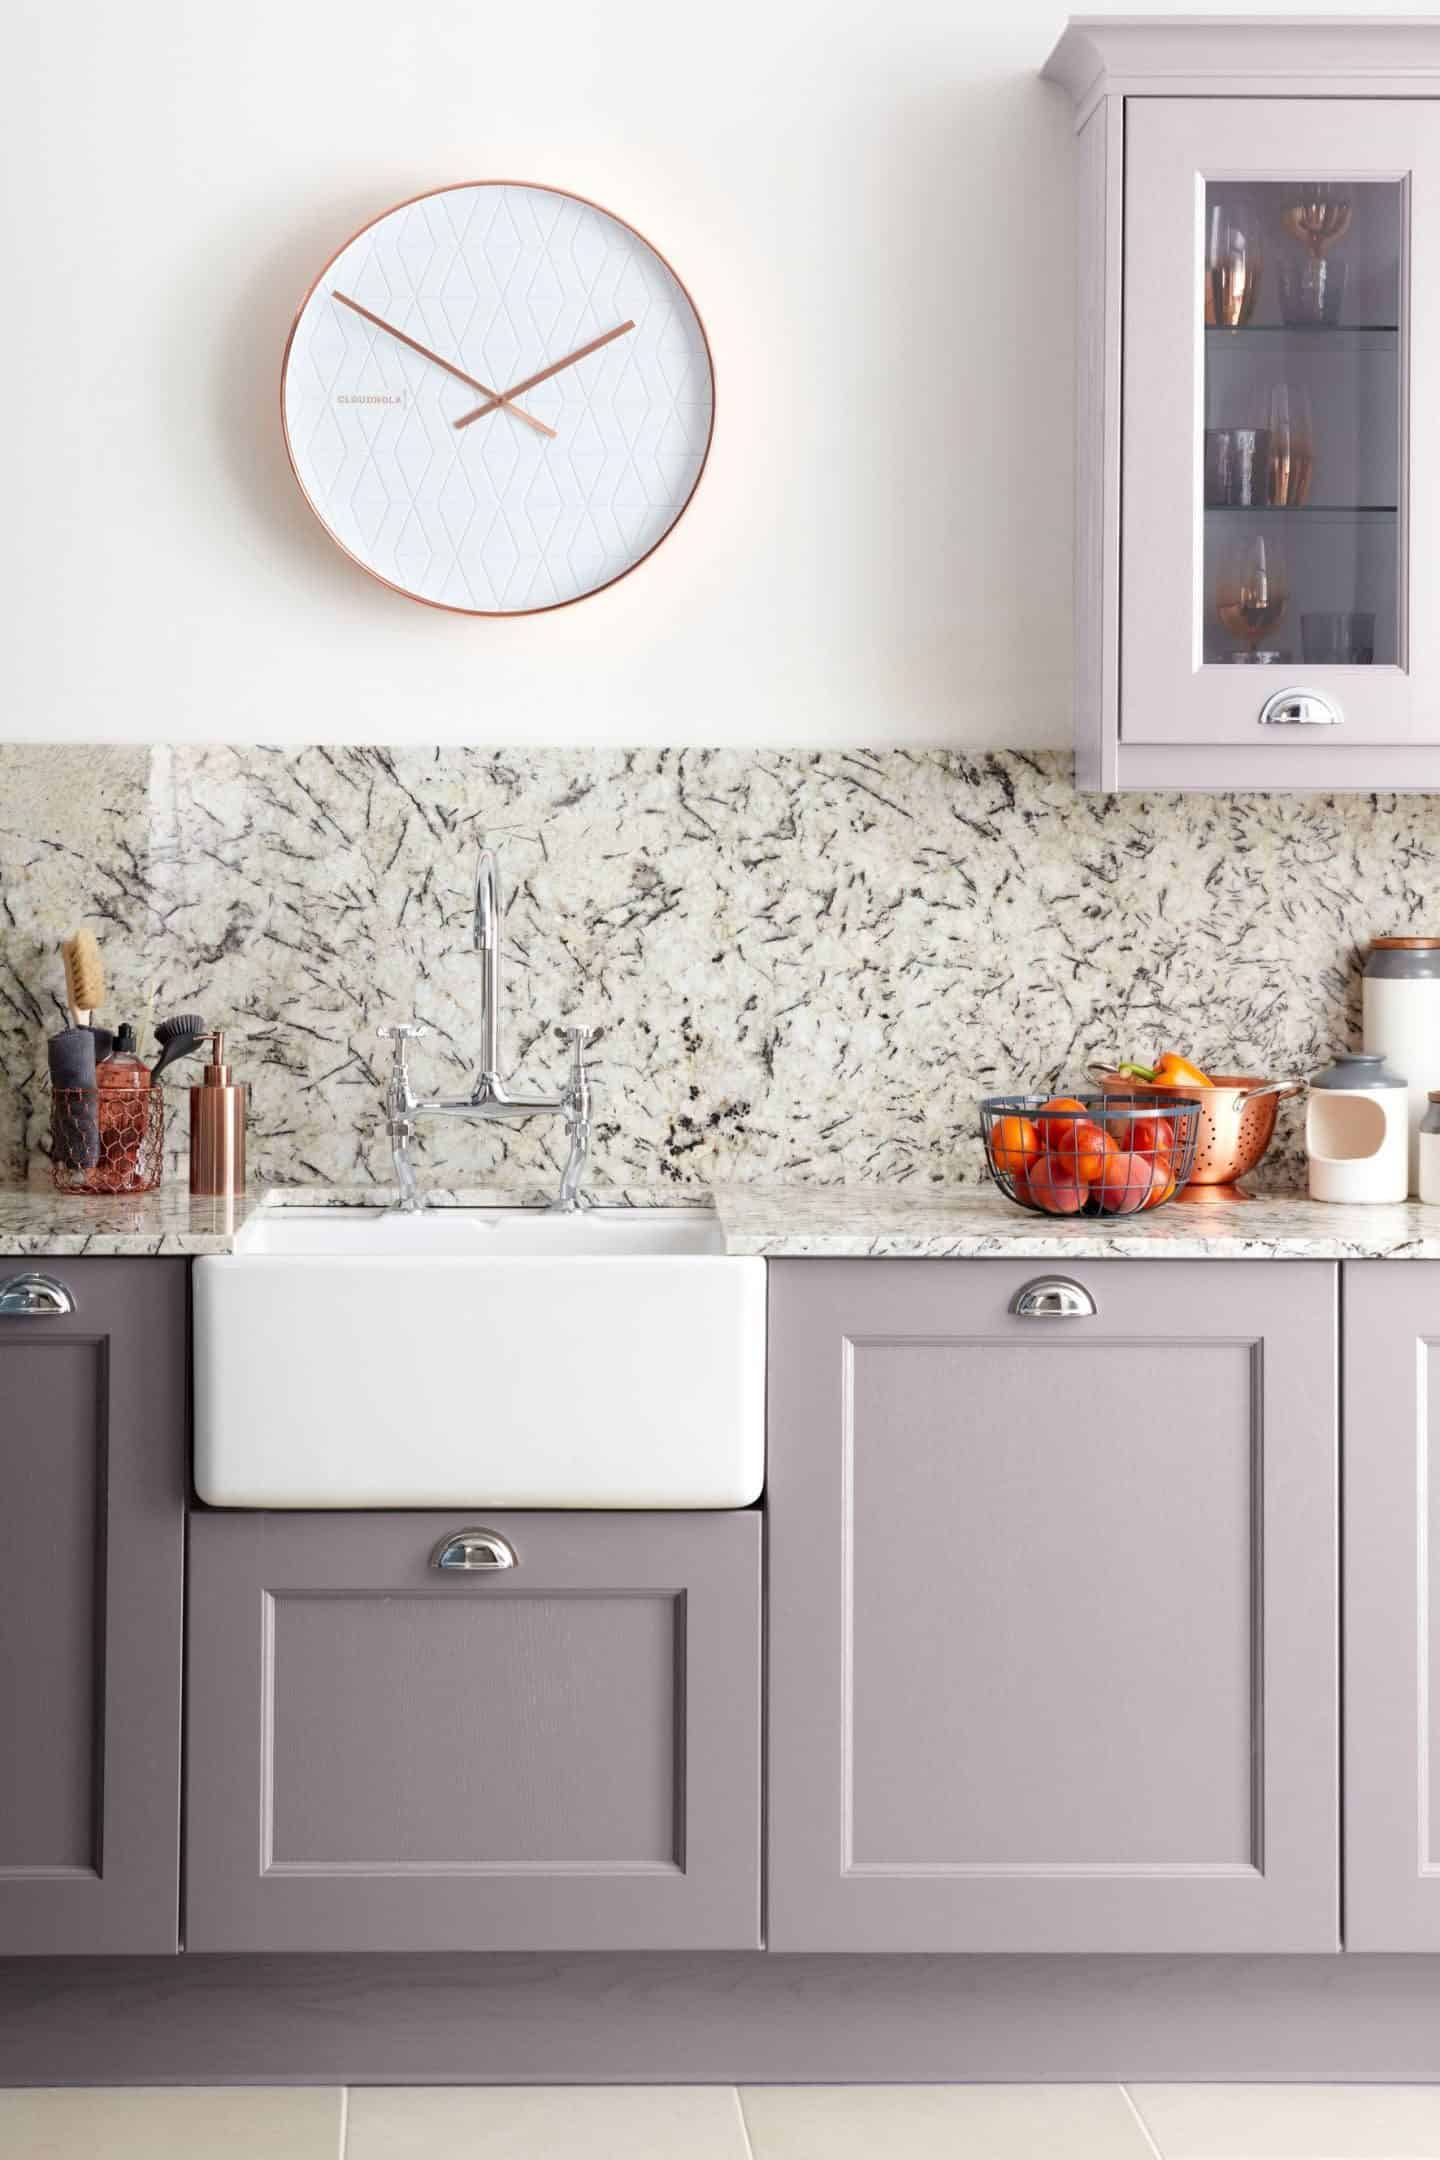 Burbidge Finsbury kitchen in Painted Powder, from £11,000